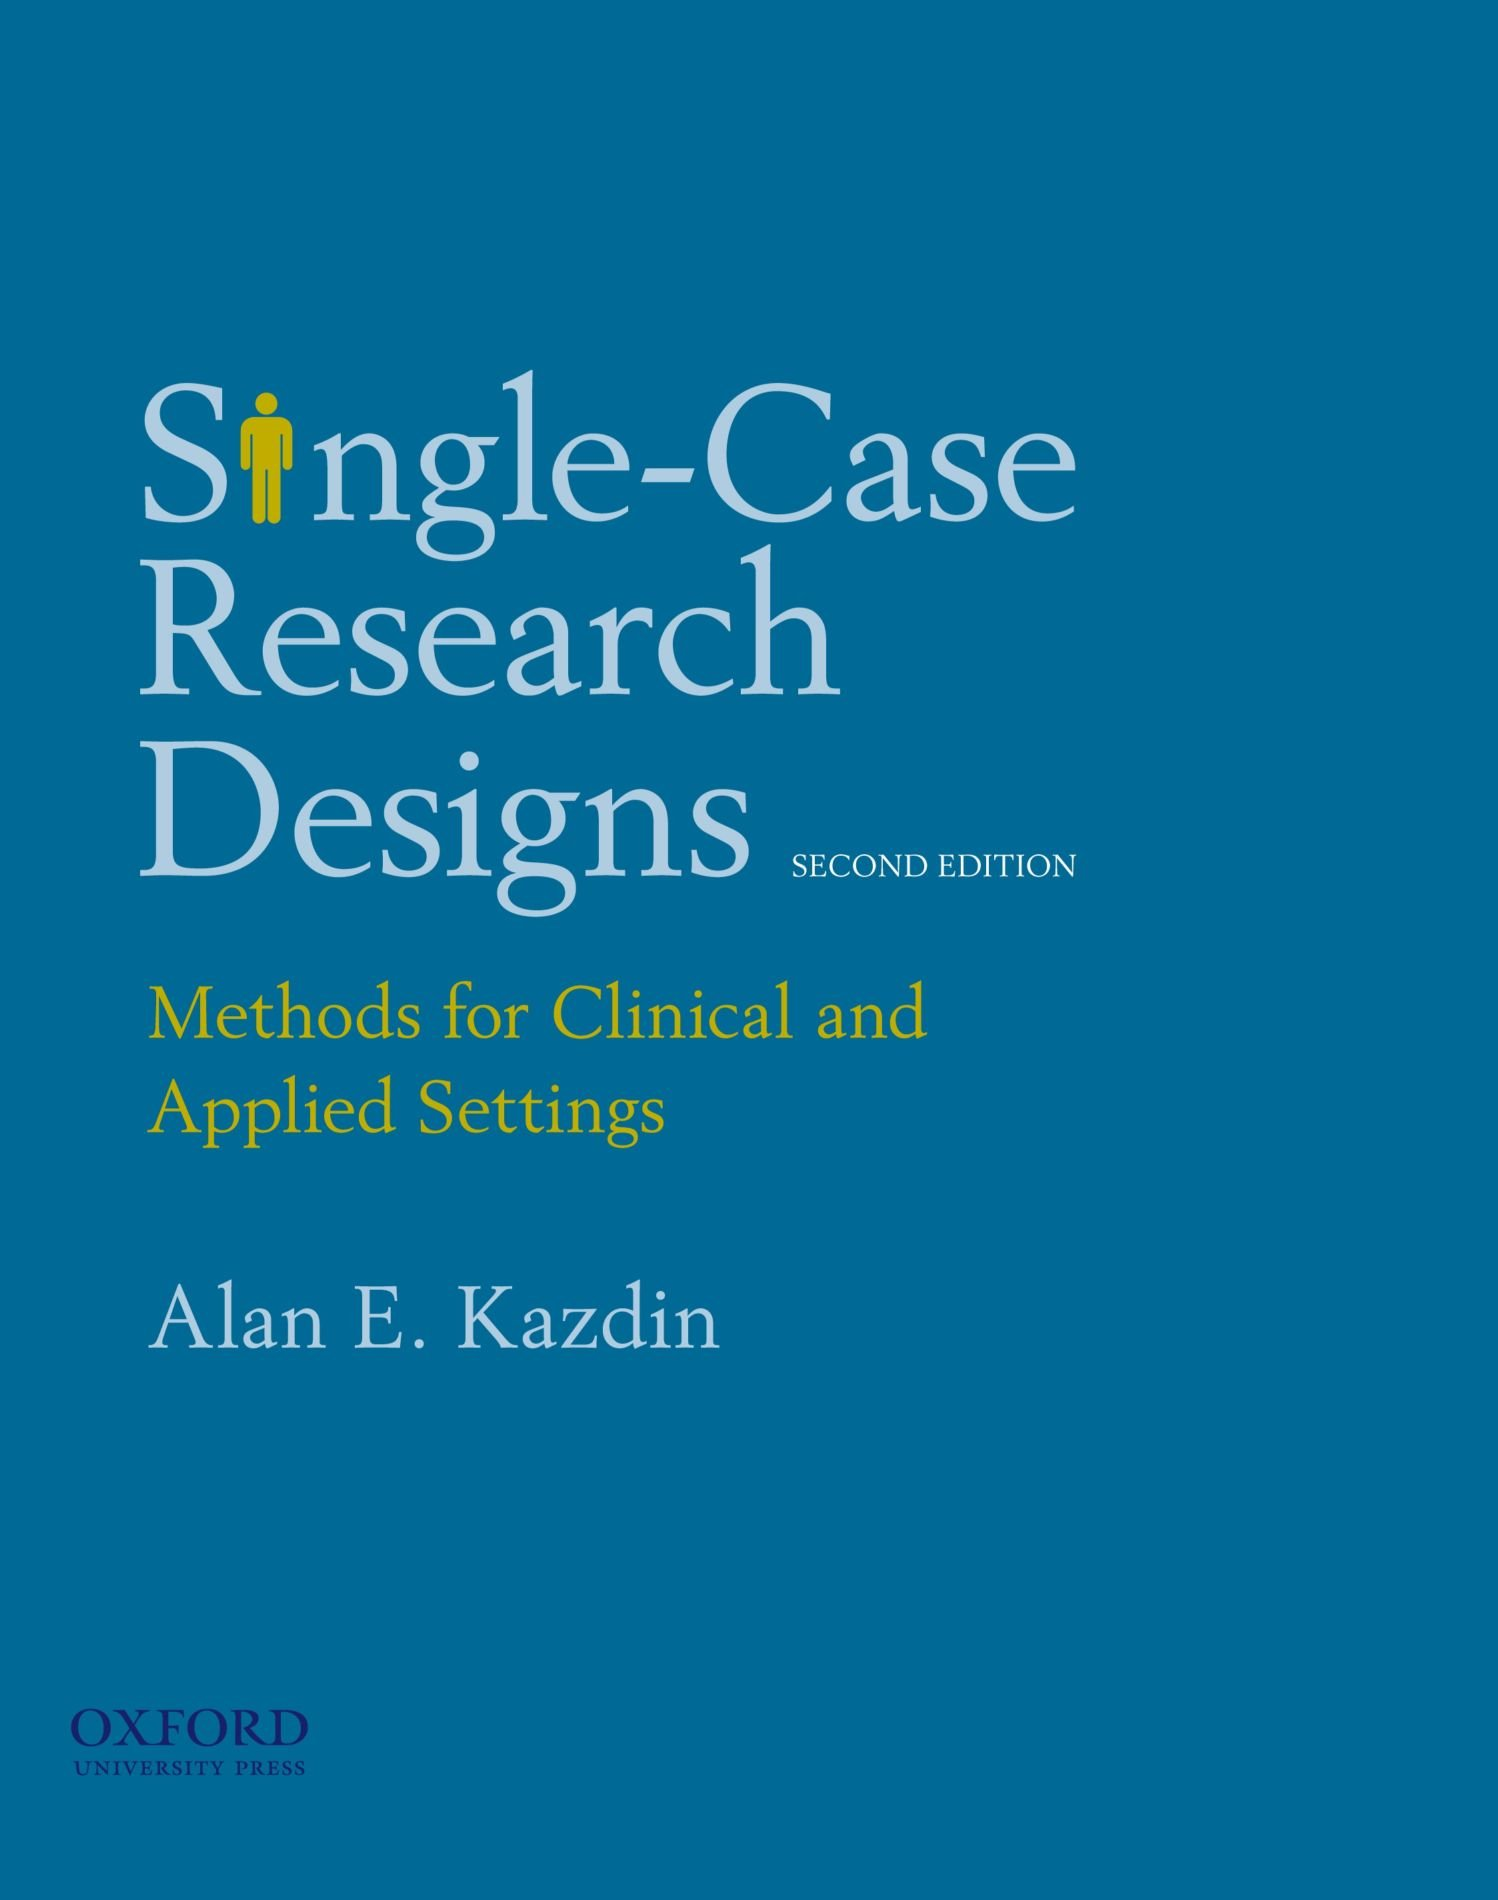 Single-Case Research Designs: Methods for Clinical and Applied Settings